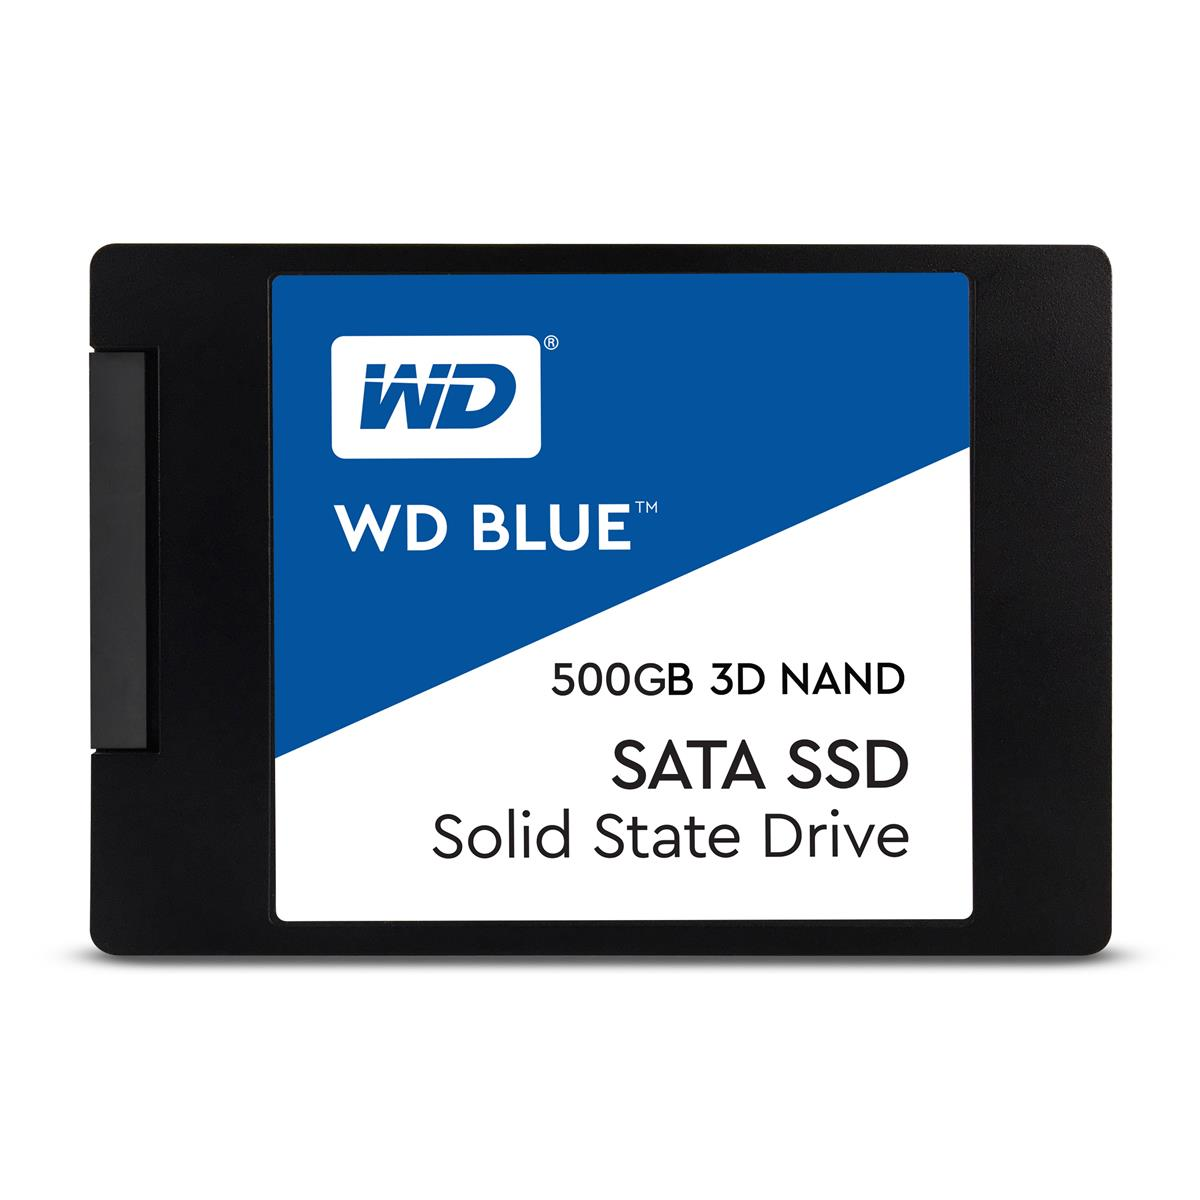 WD Blue (500GB) 3D NAND SATA 2.5 inch Solid State Drive